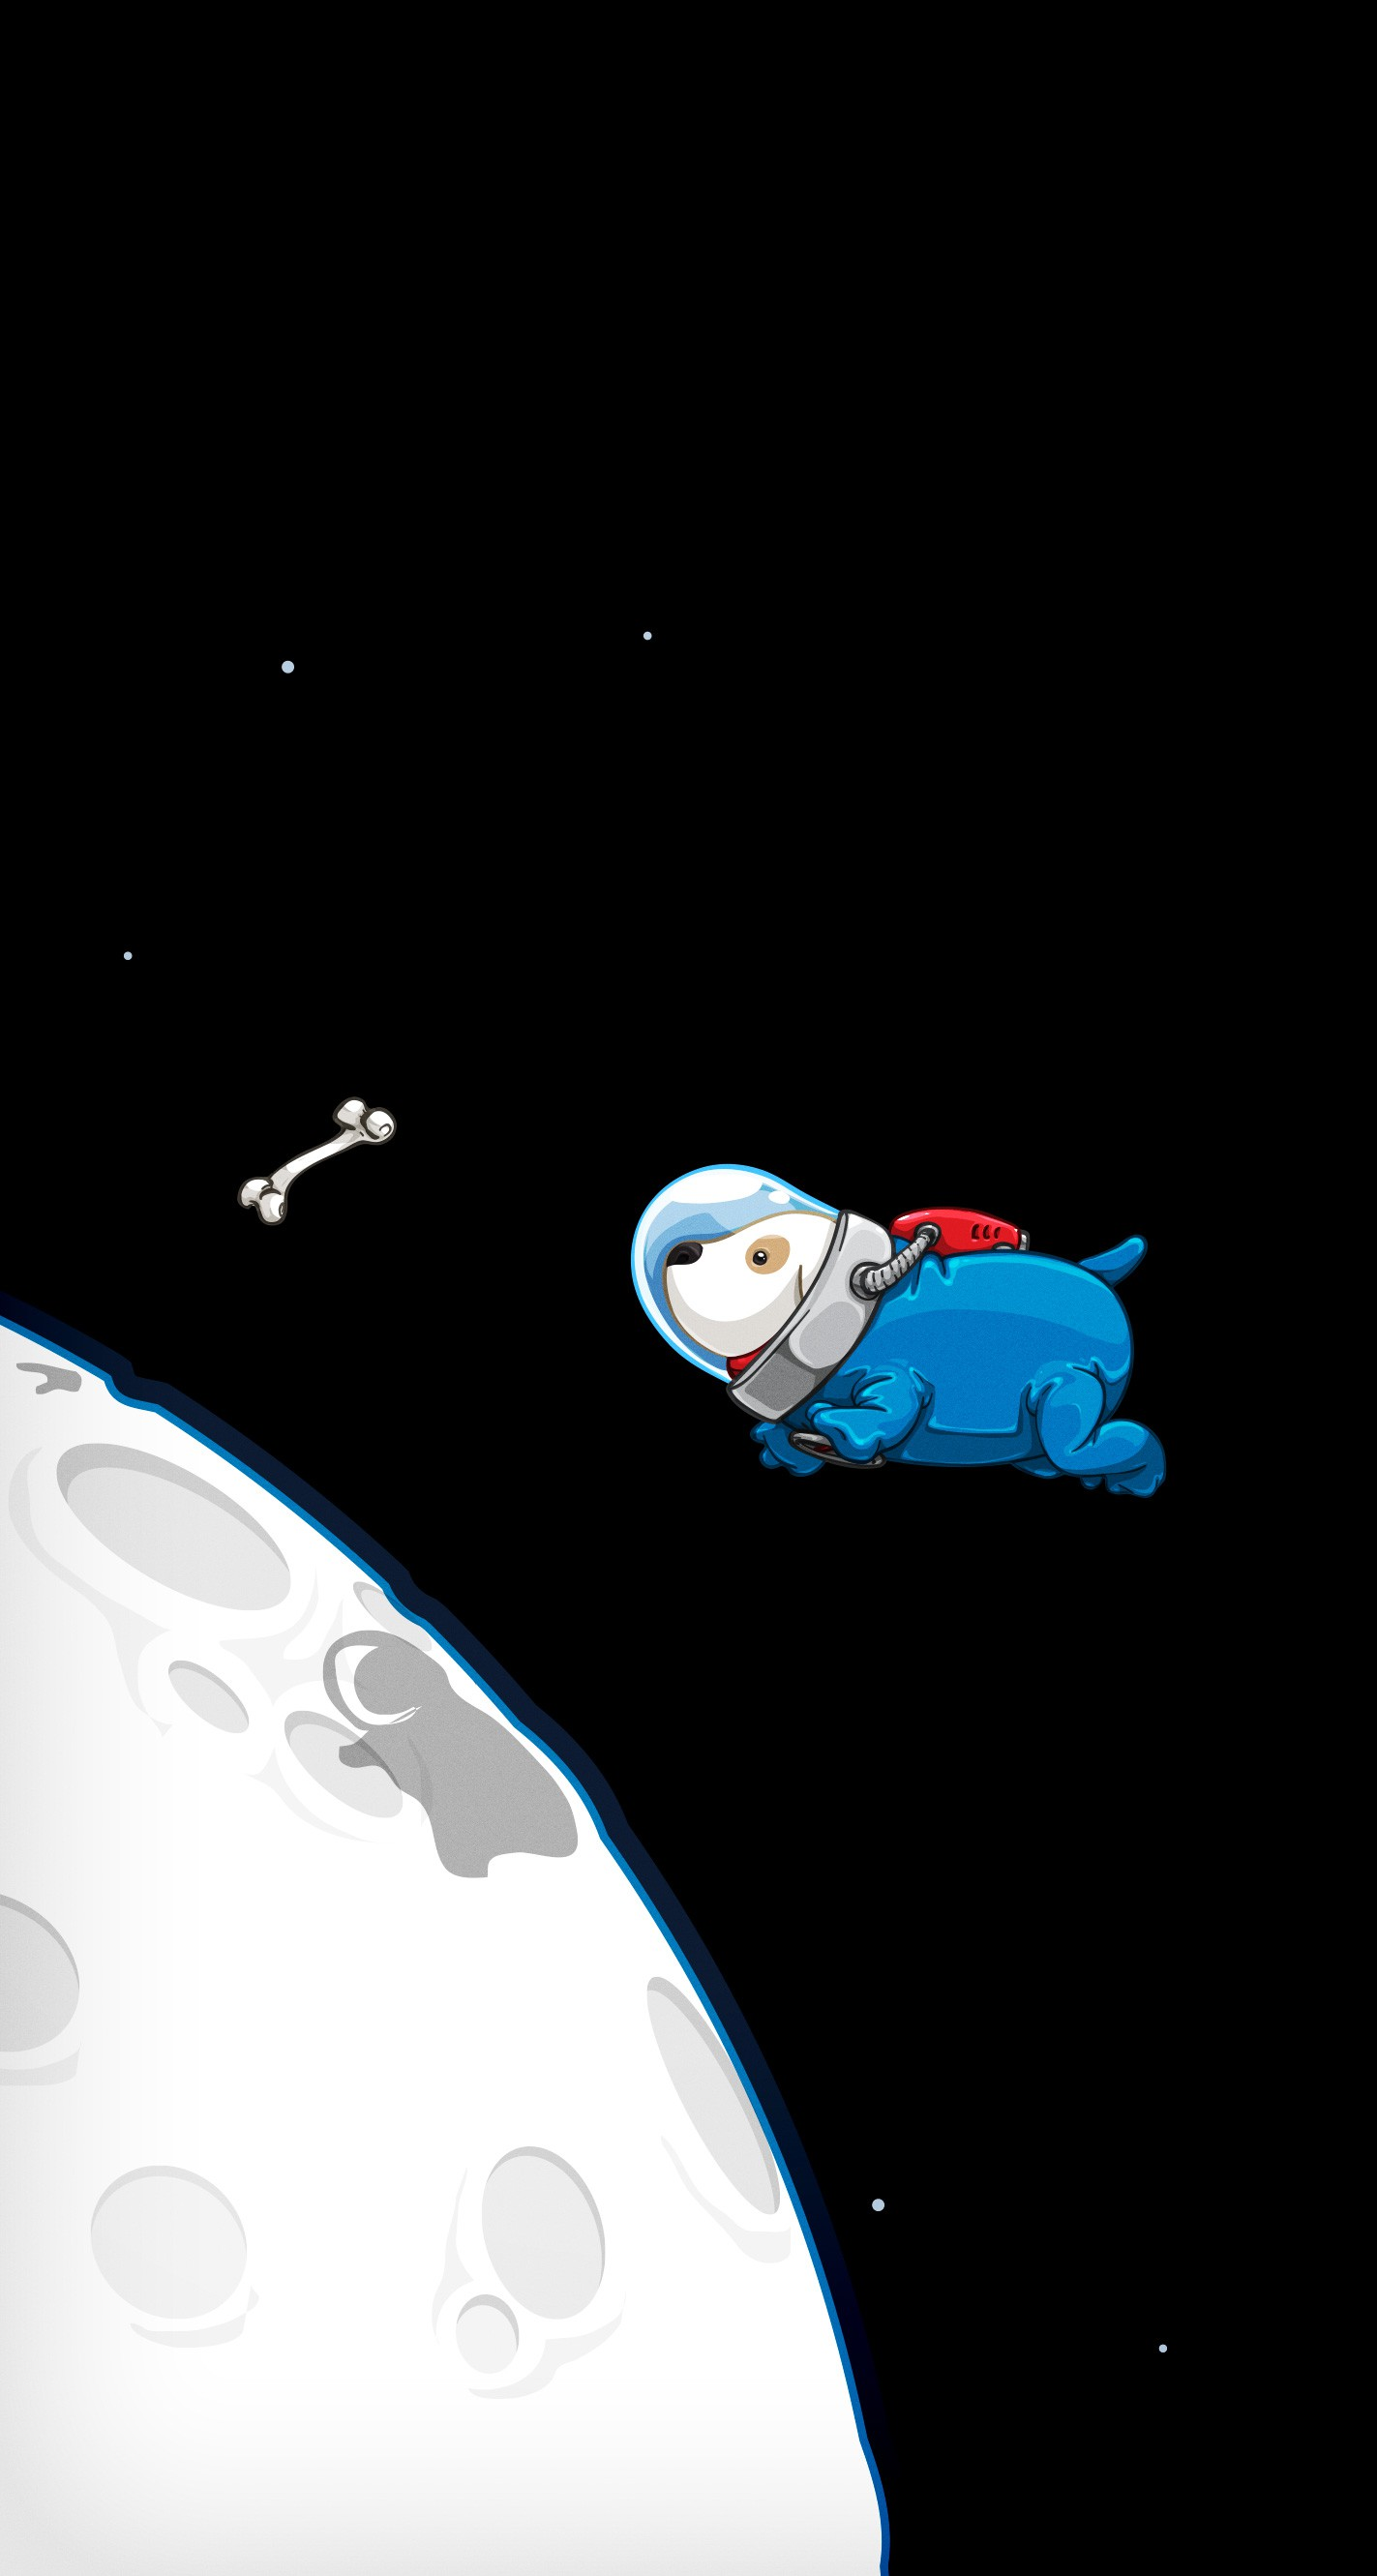 Wallpaper Cute Little Girl Cartoon David Lanham Space Doggy